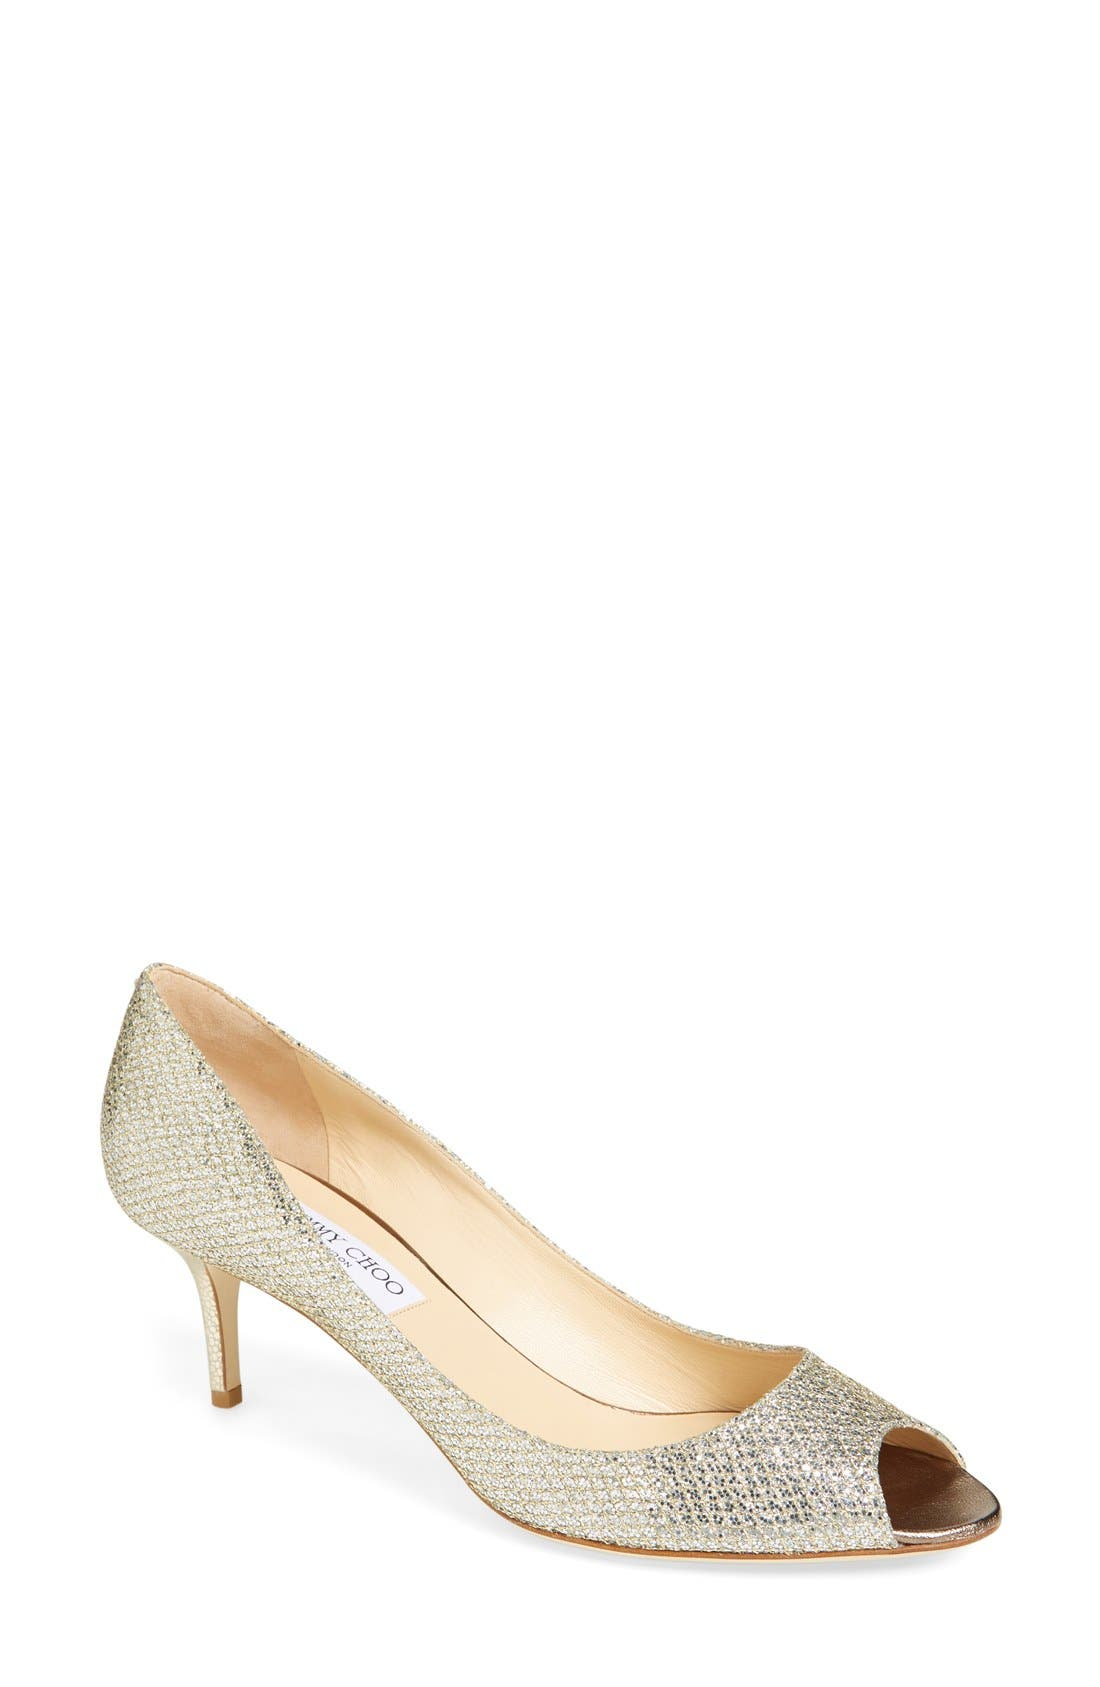 Alternate Image 1 Selected - Jimmy Choo 'Isabel' Pump